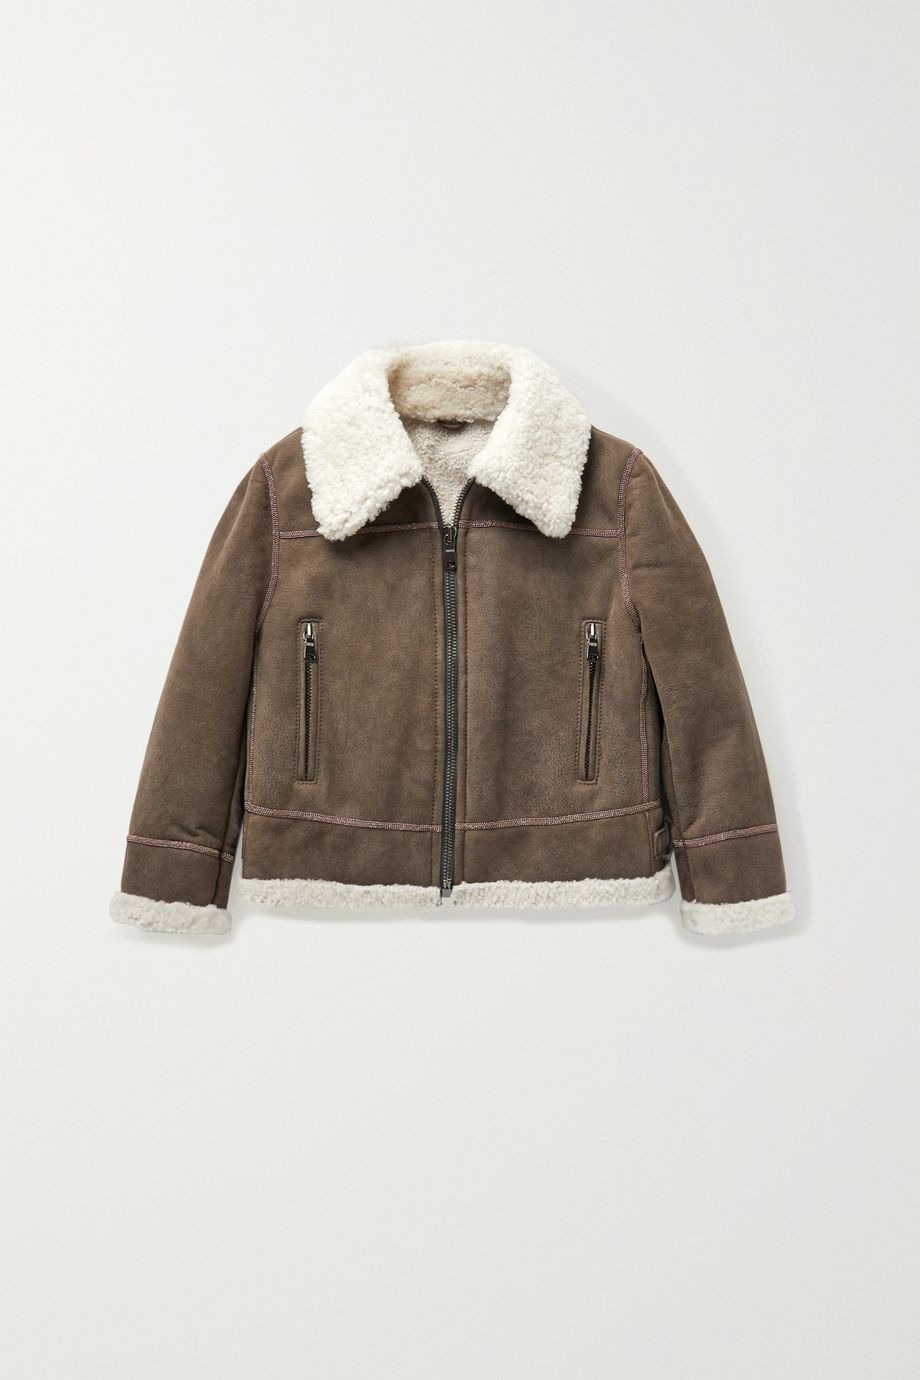 Brunello Cucinelli Kids Ages 4 - 6 shearling jacket